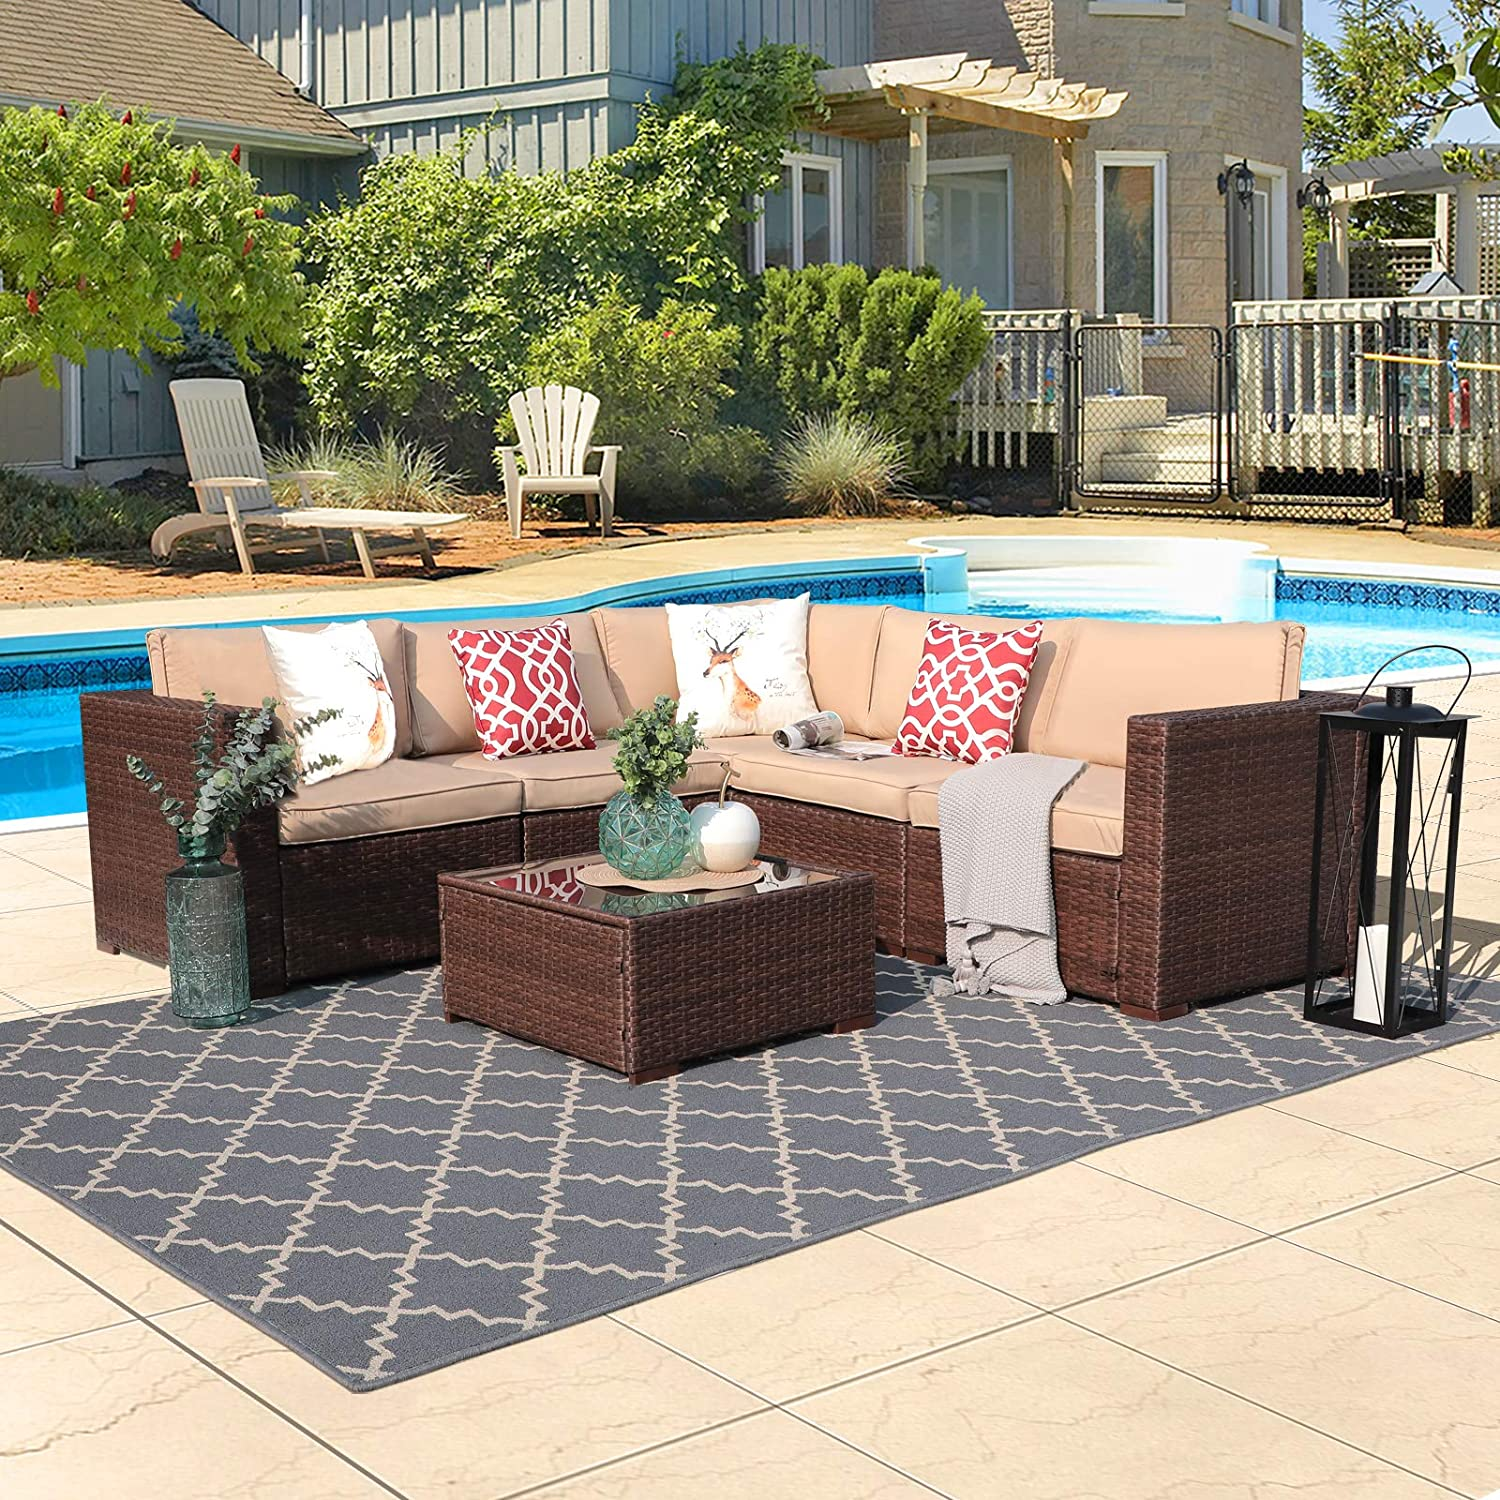 Super Patio 6 Piece Patio Furniture, All Weather PE Espresso Brown Wicker Outdoor Funiture with Glass Coffee Table, Steel Frame, Beige Cushions